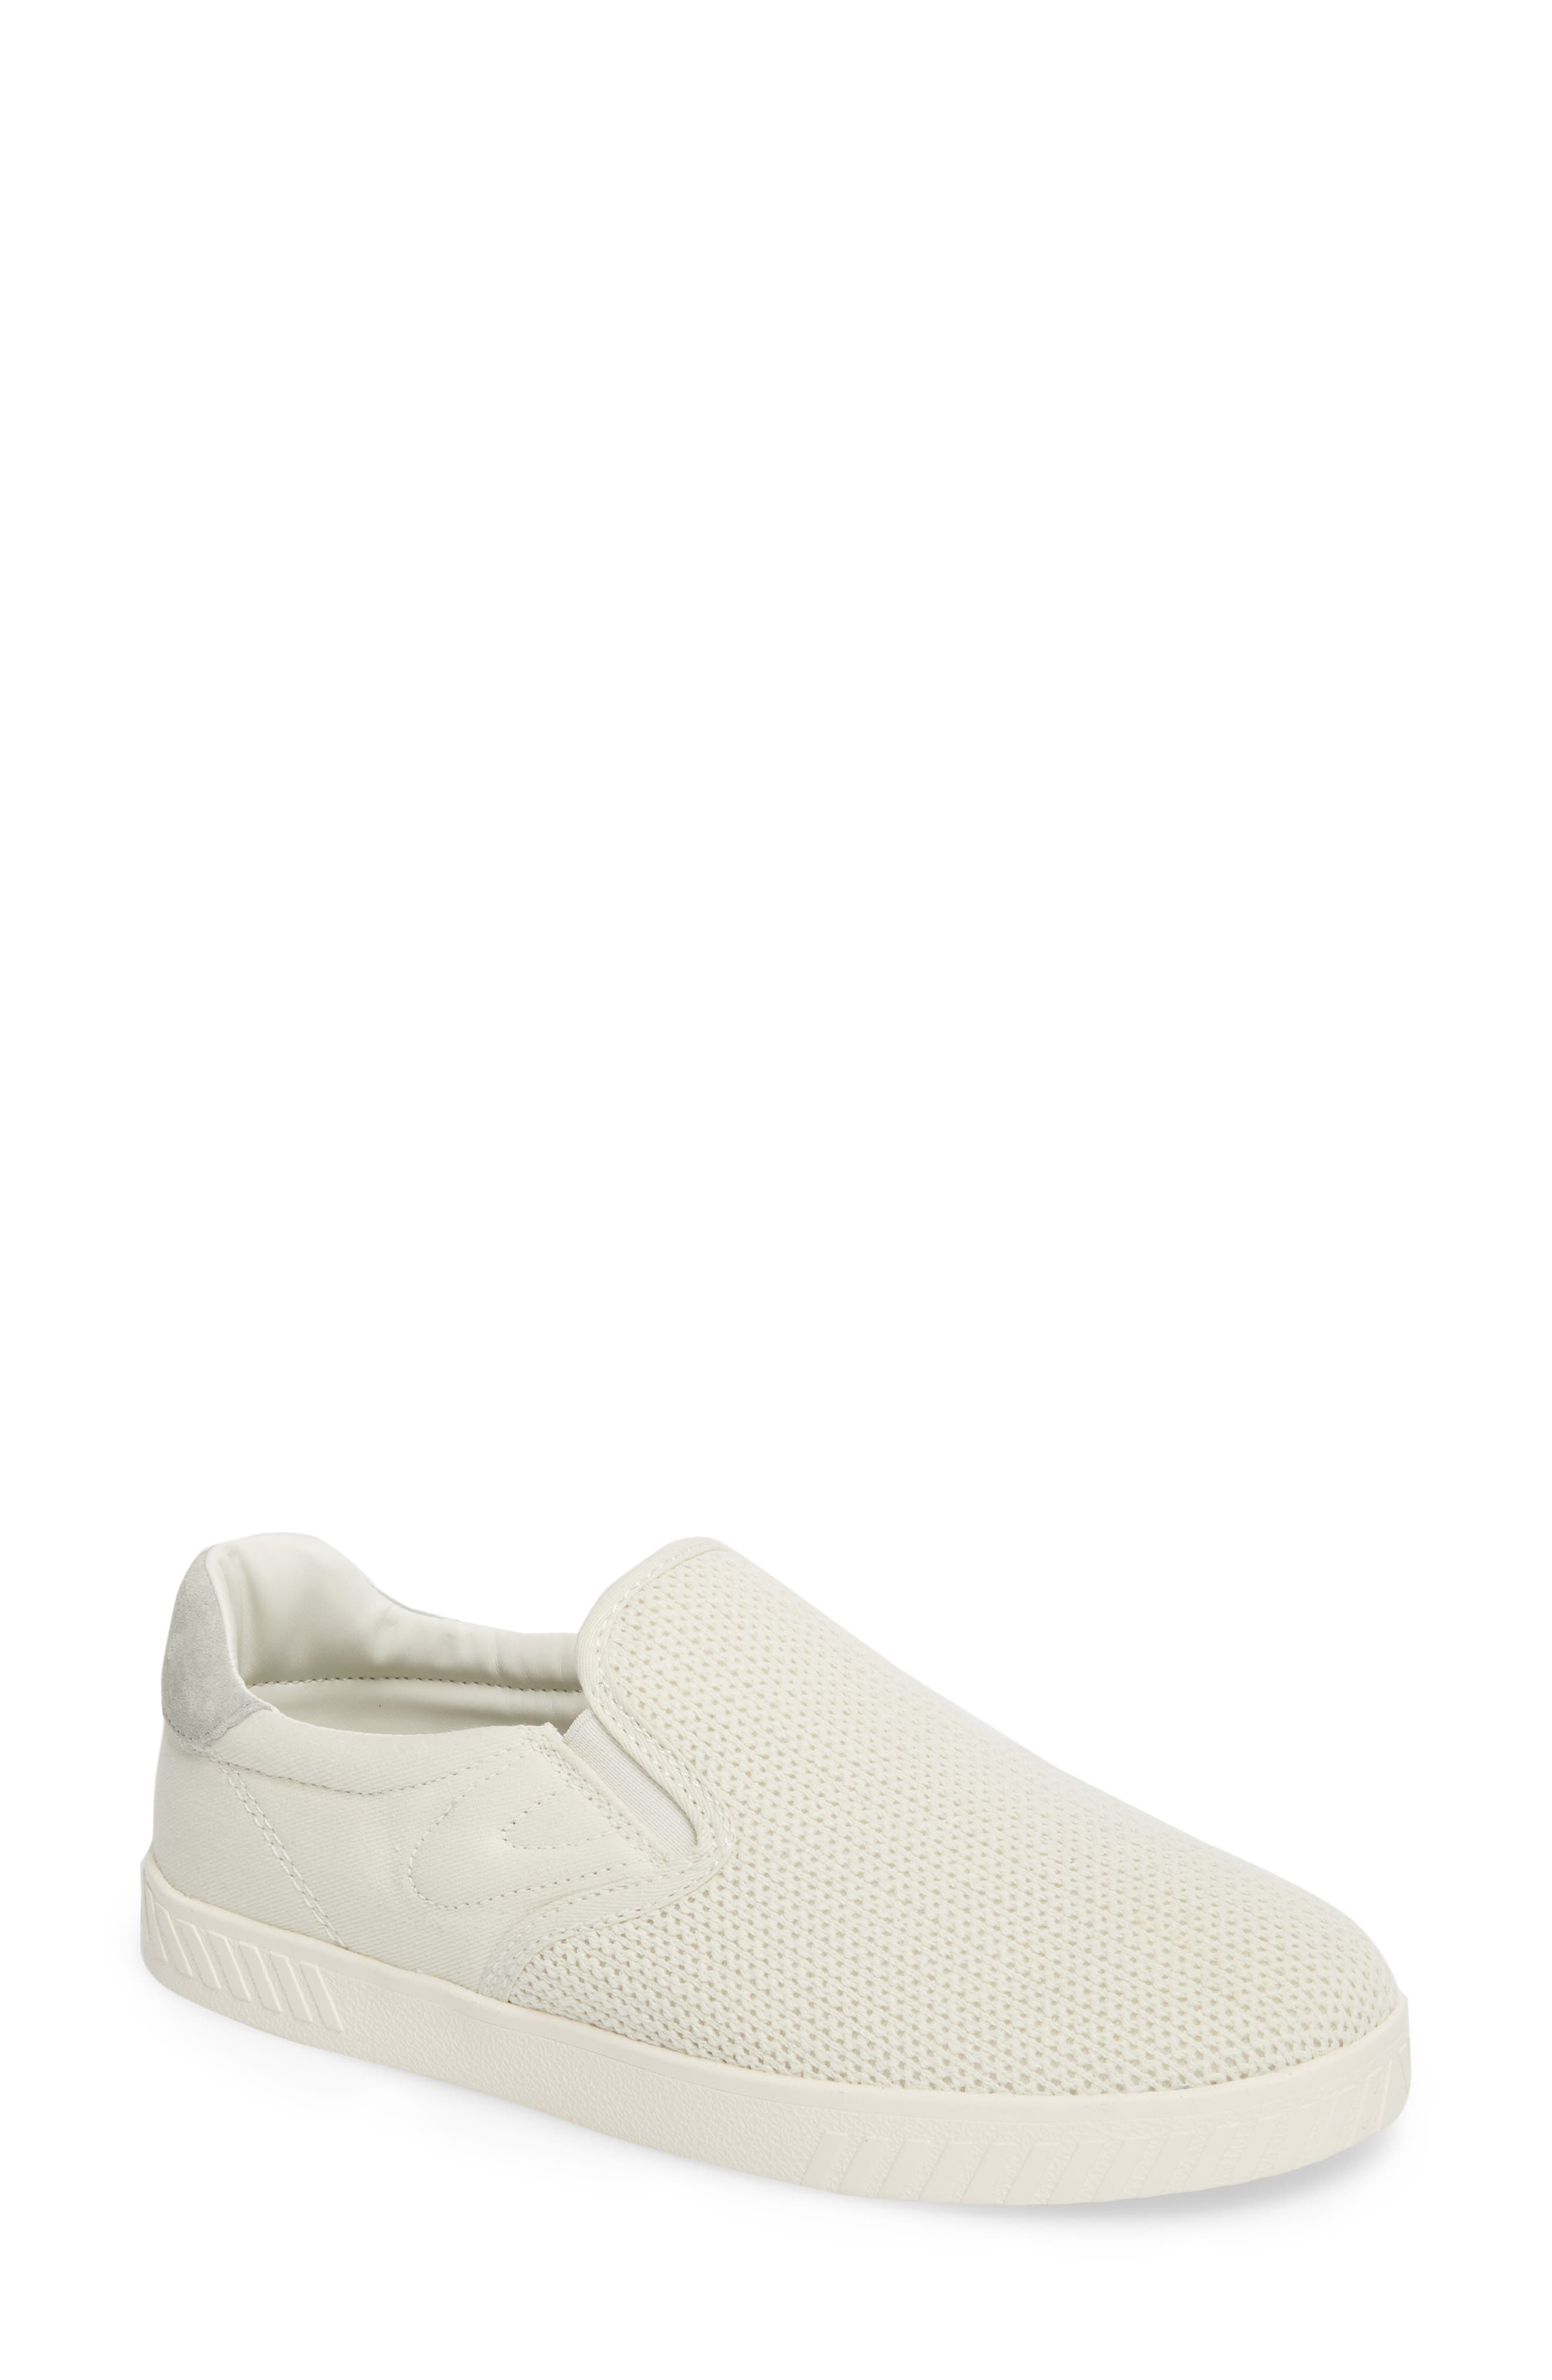 Cruz Mesh Slip-On Sneaker,                             Main thumbnail 2, color,